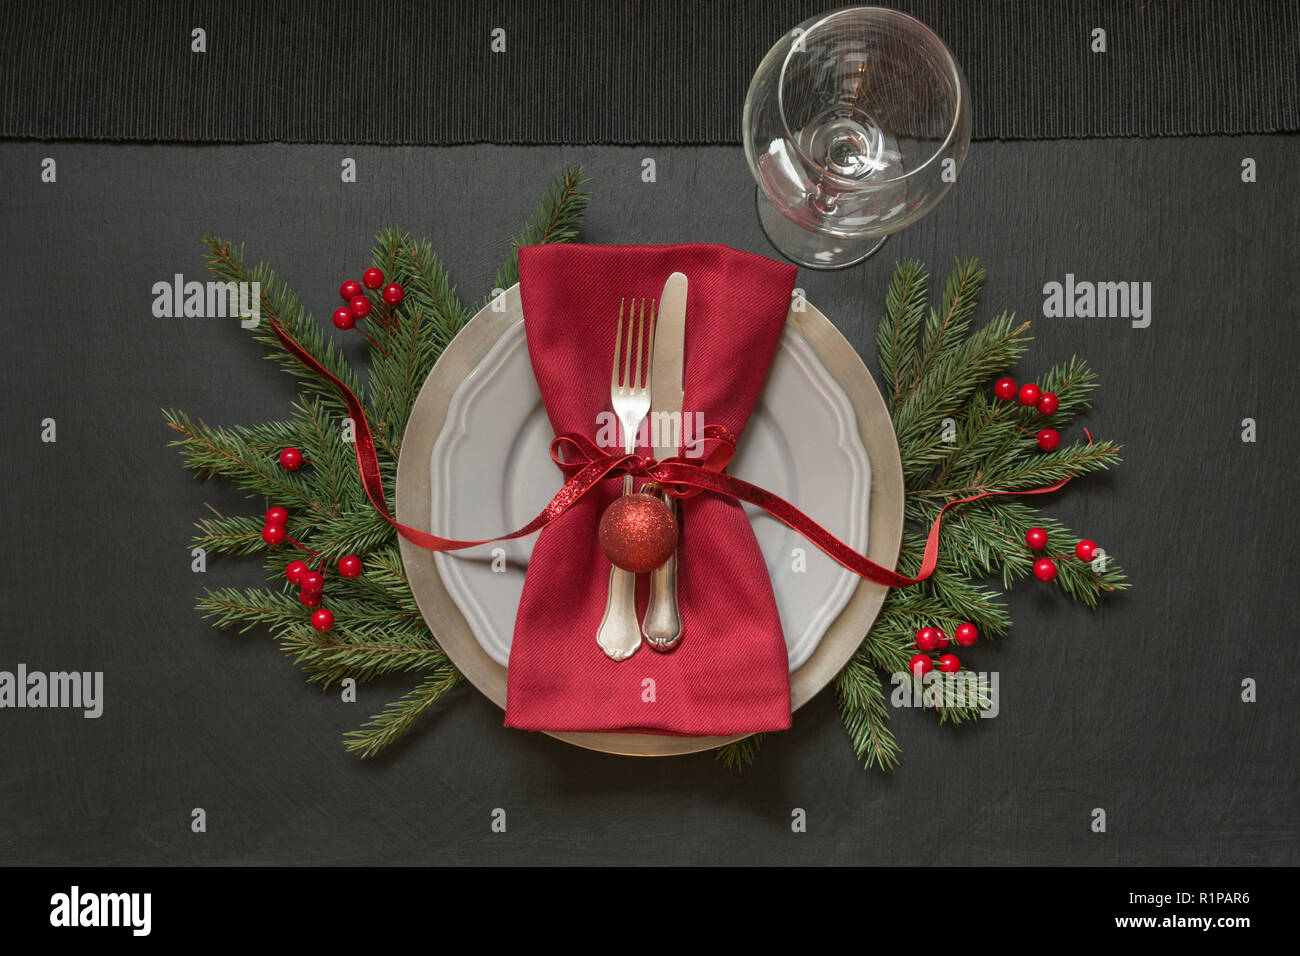 Christmas Table Setting With Red Decor On Black Top View Xmas Party Stock Photo Alamy